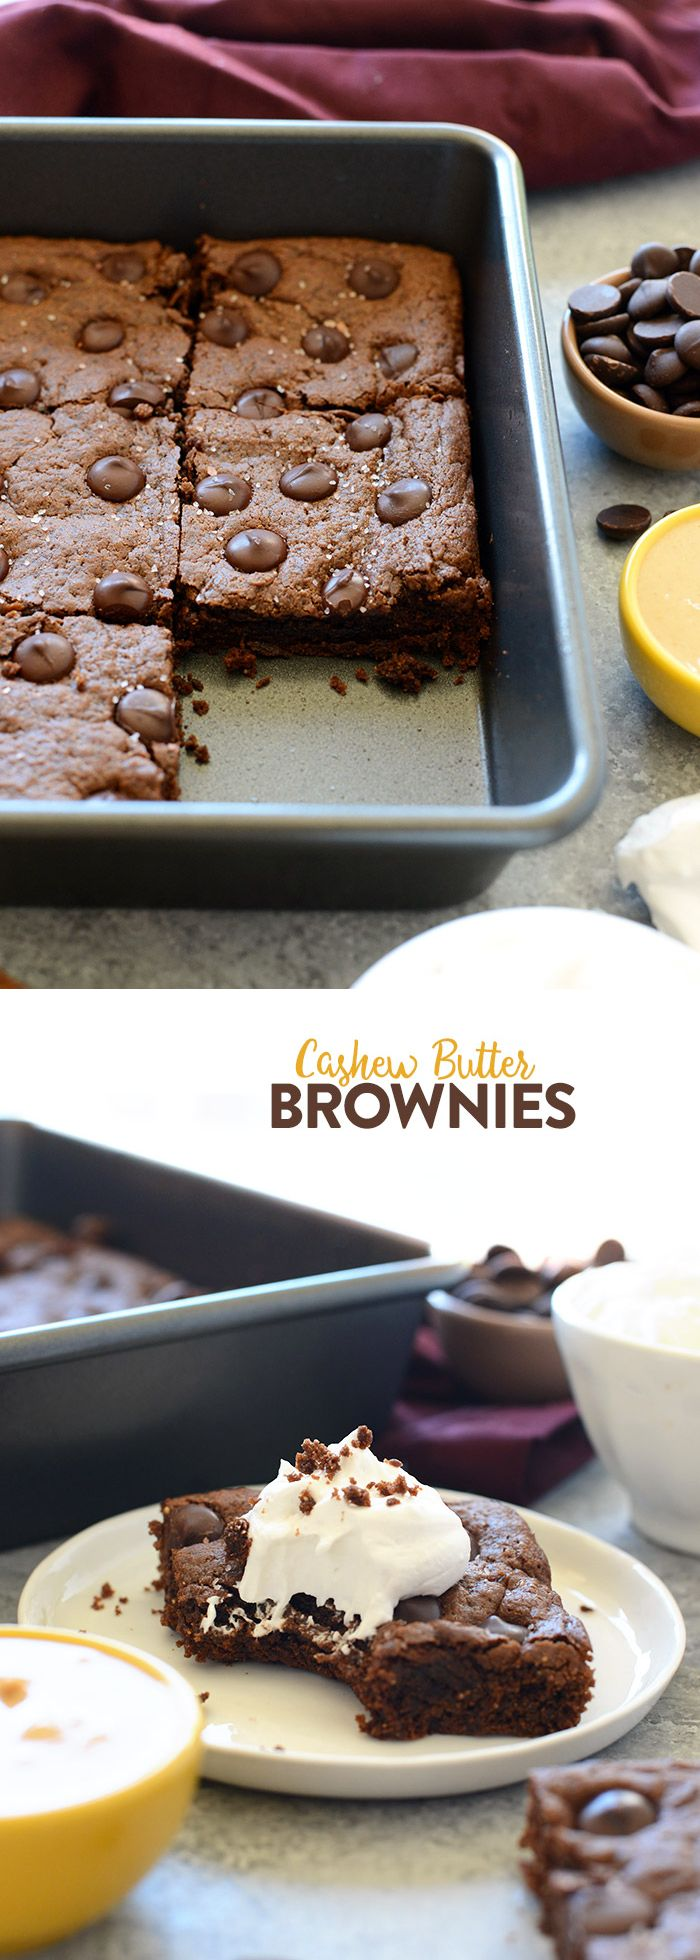 These are the ultimate flourless brownies made with a cashew butter base, no refined sugar, no butter, and of course, no flour!